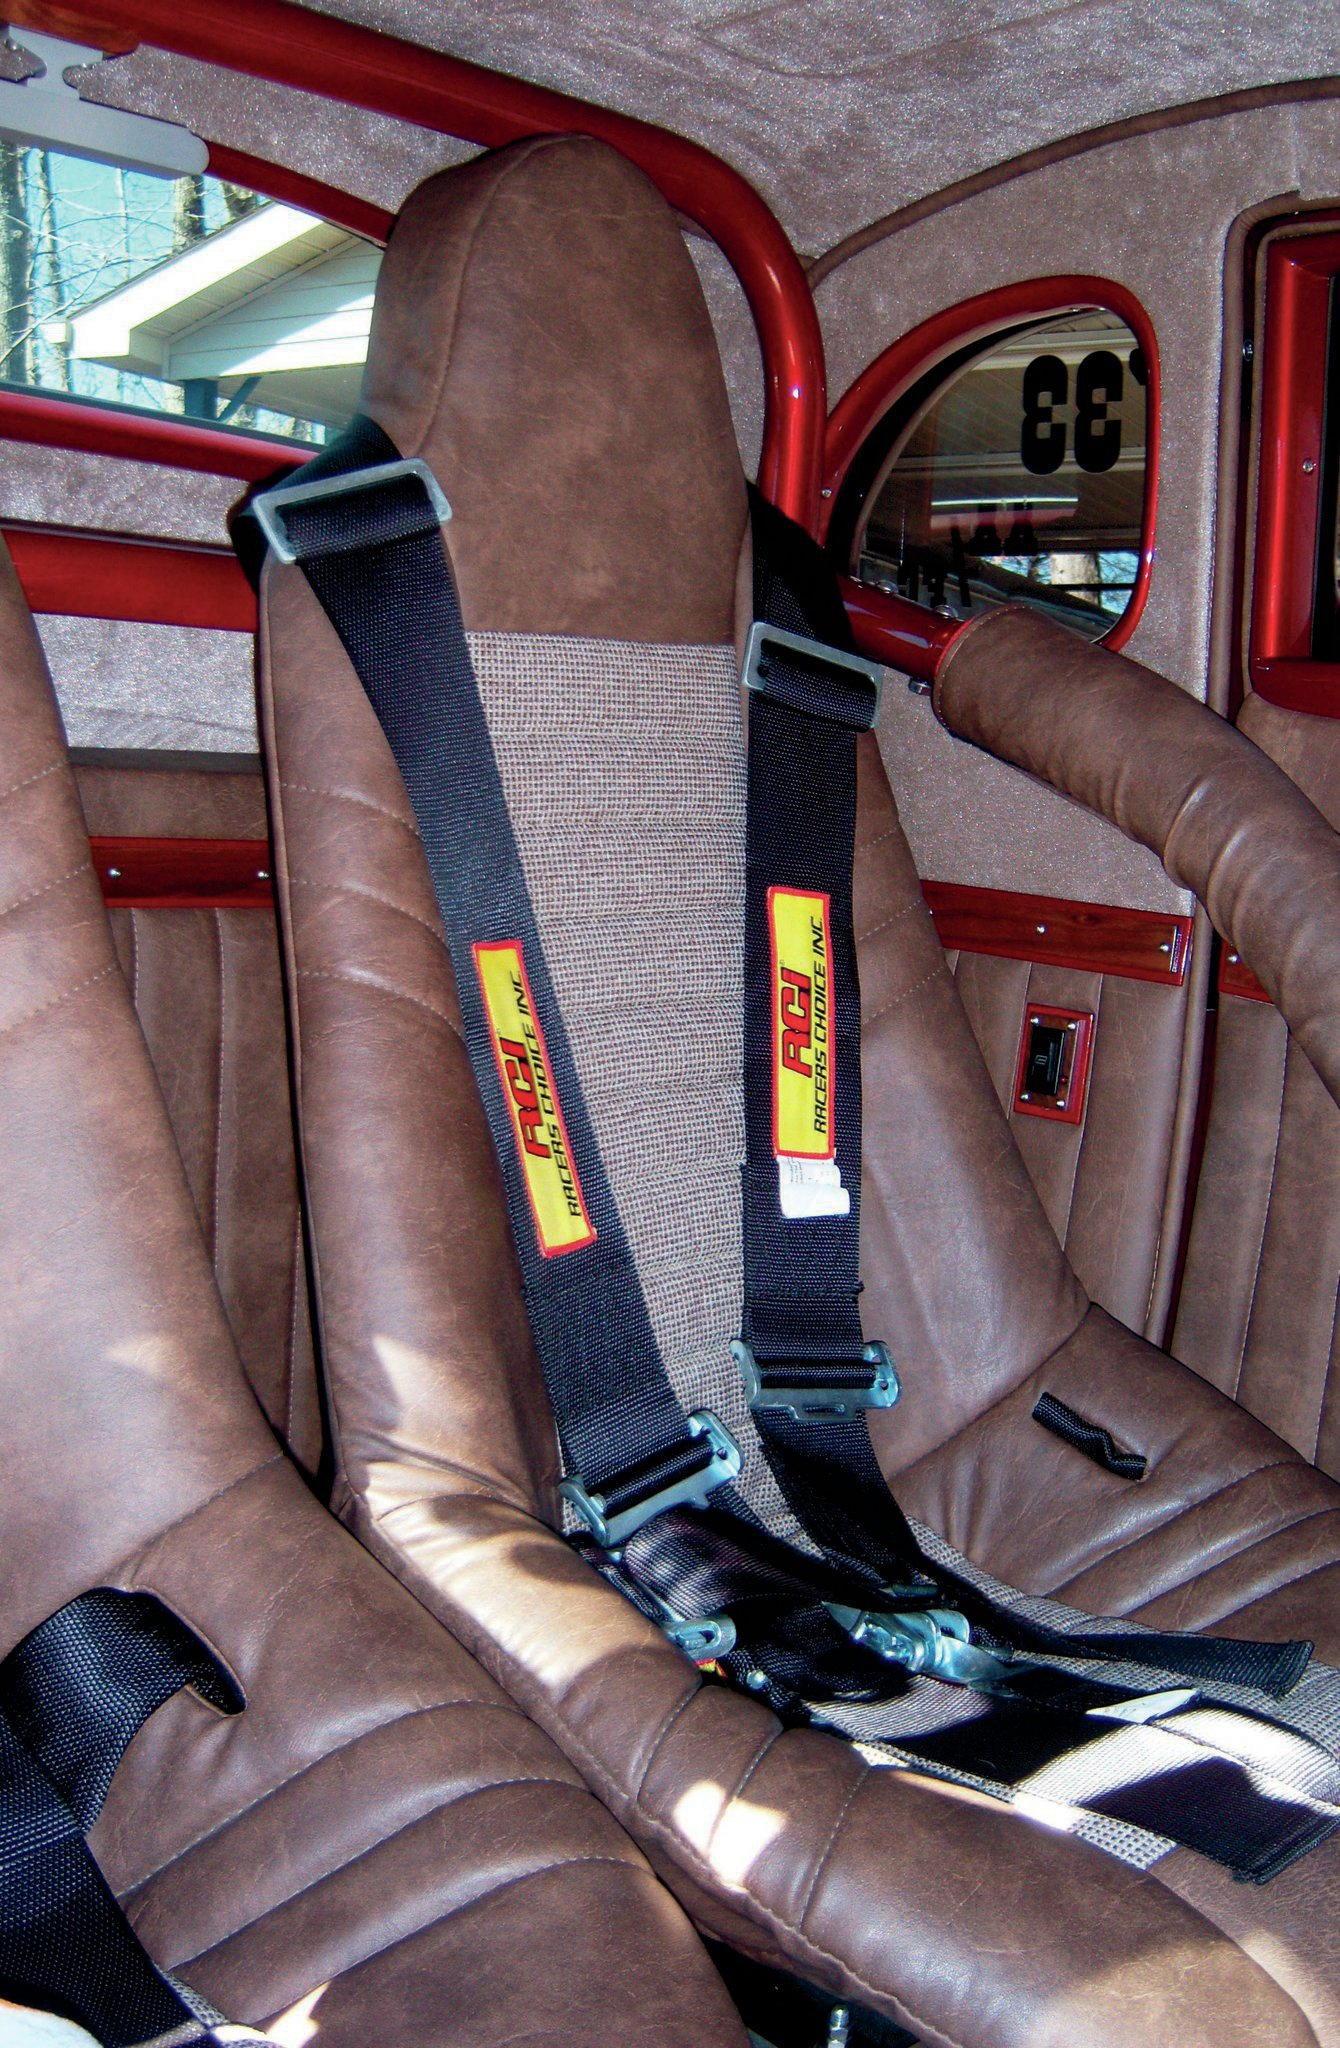 Bill and Lottie Stockwell at Bill's Auto Upholstery covered the interior, including the Jeg's fiberglass bucket seats in Carrera Tan vinyl and cloth. Notice the rollbar and safety belts are genuine competition-grade components.